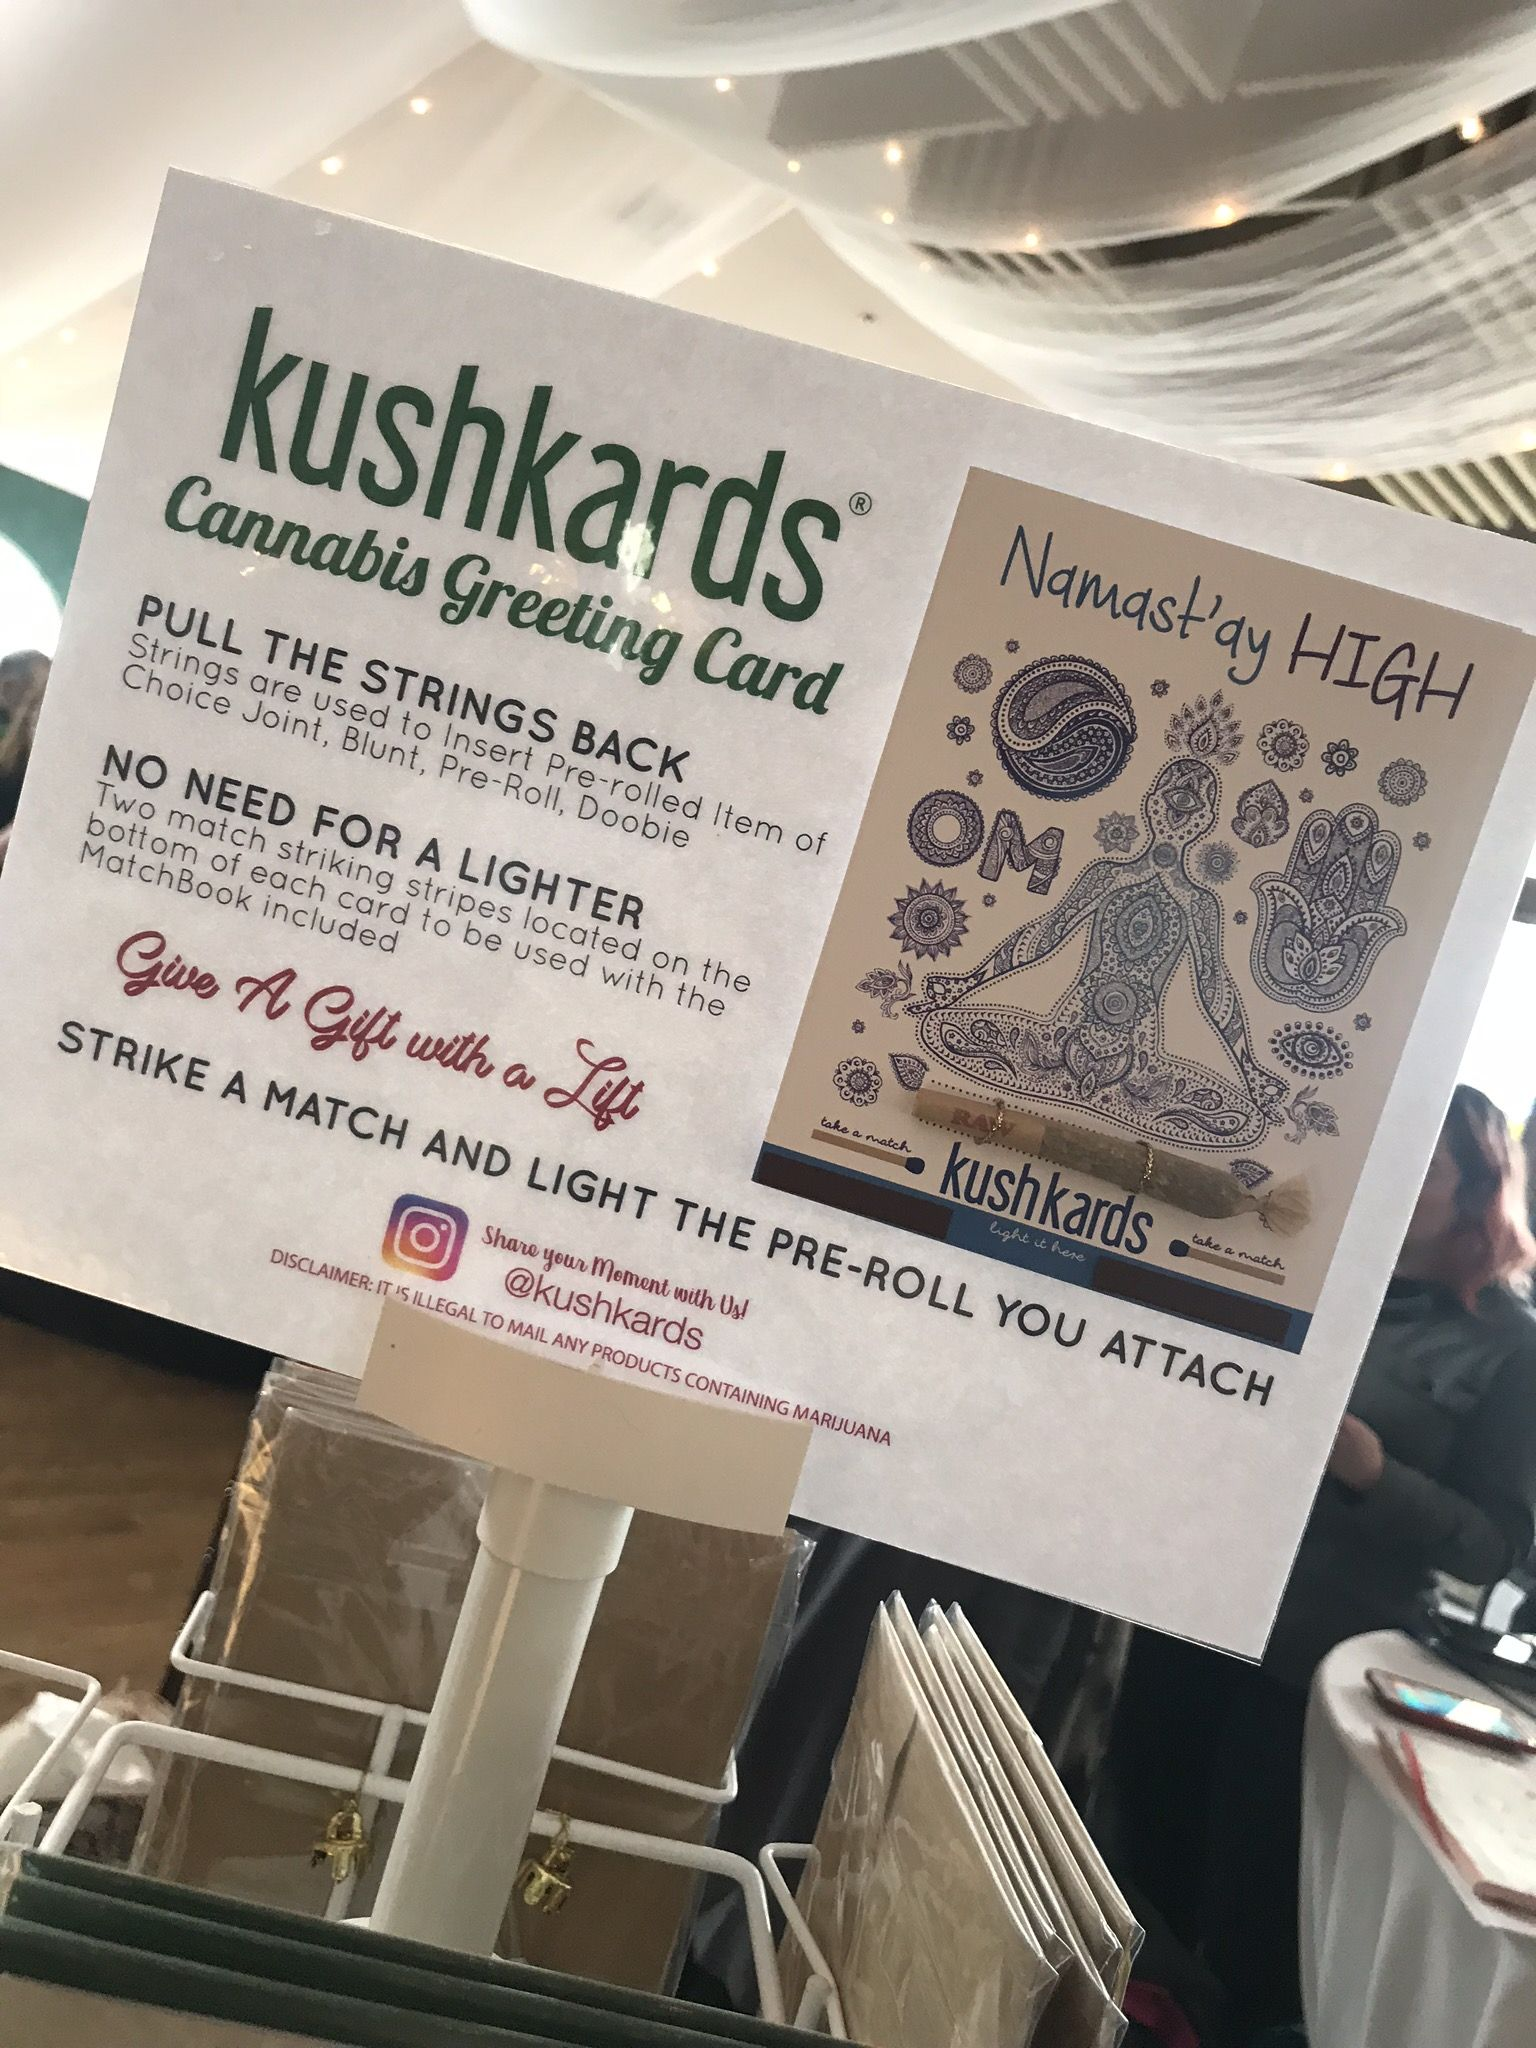 Pin By Kushkards Cannabis Greeting Cards On Cannabis Wedding Expo